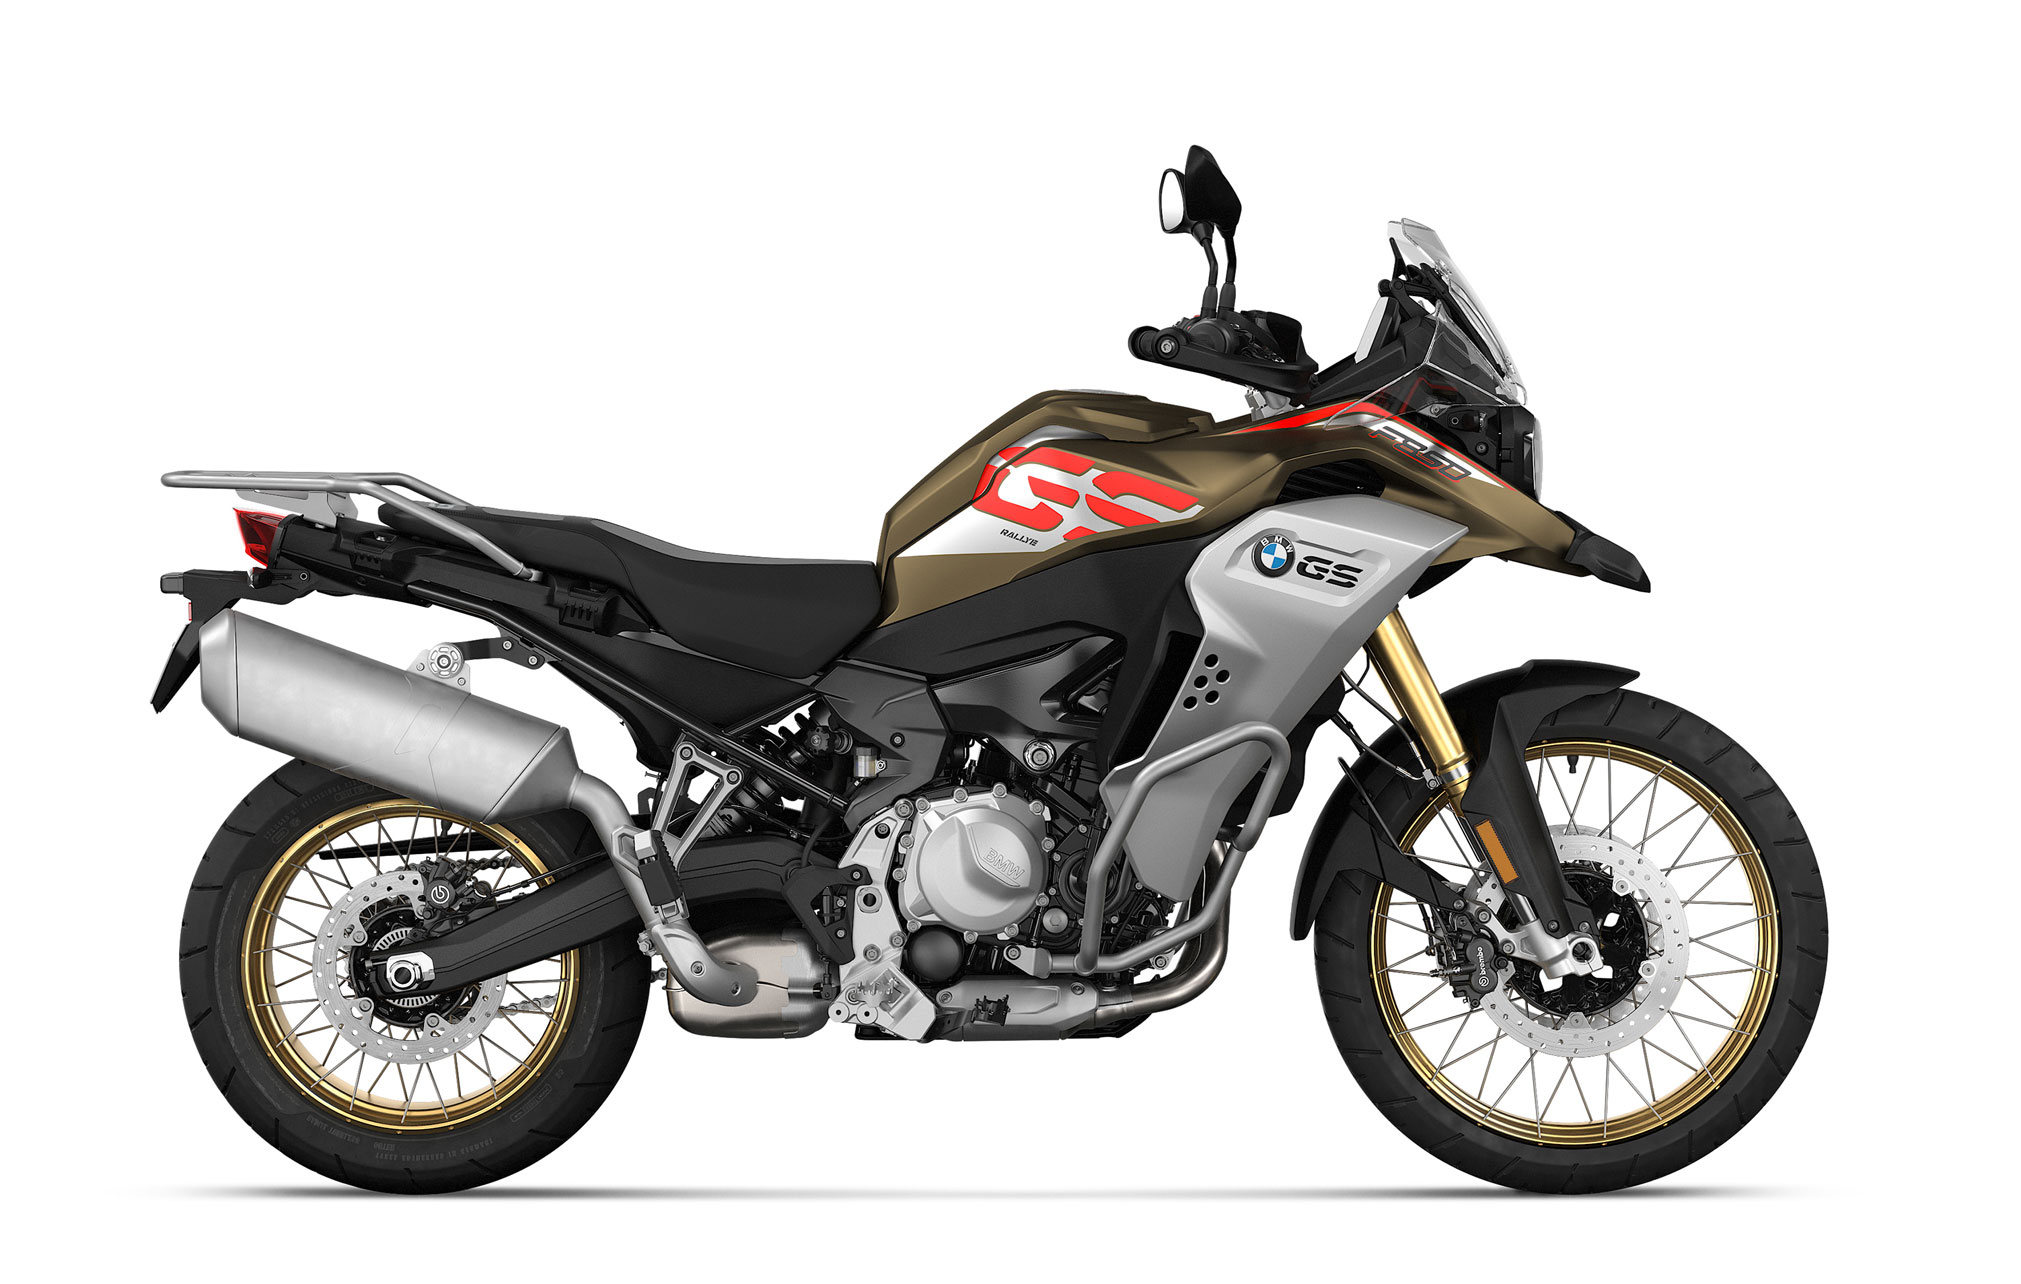 2021 BMW F850GS Adventure Guide • Total Motorcycle